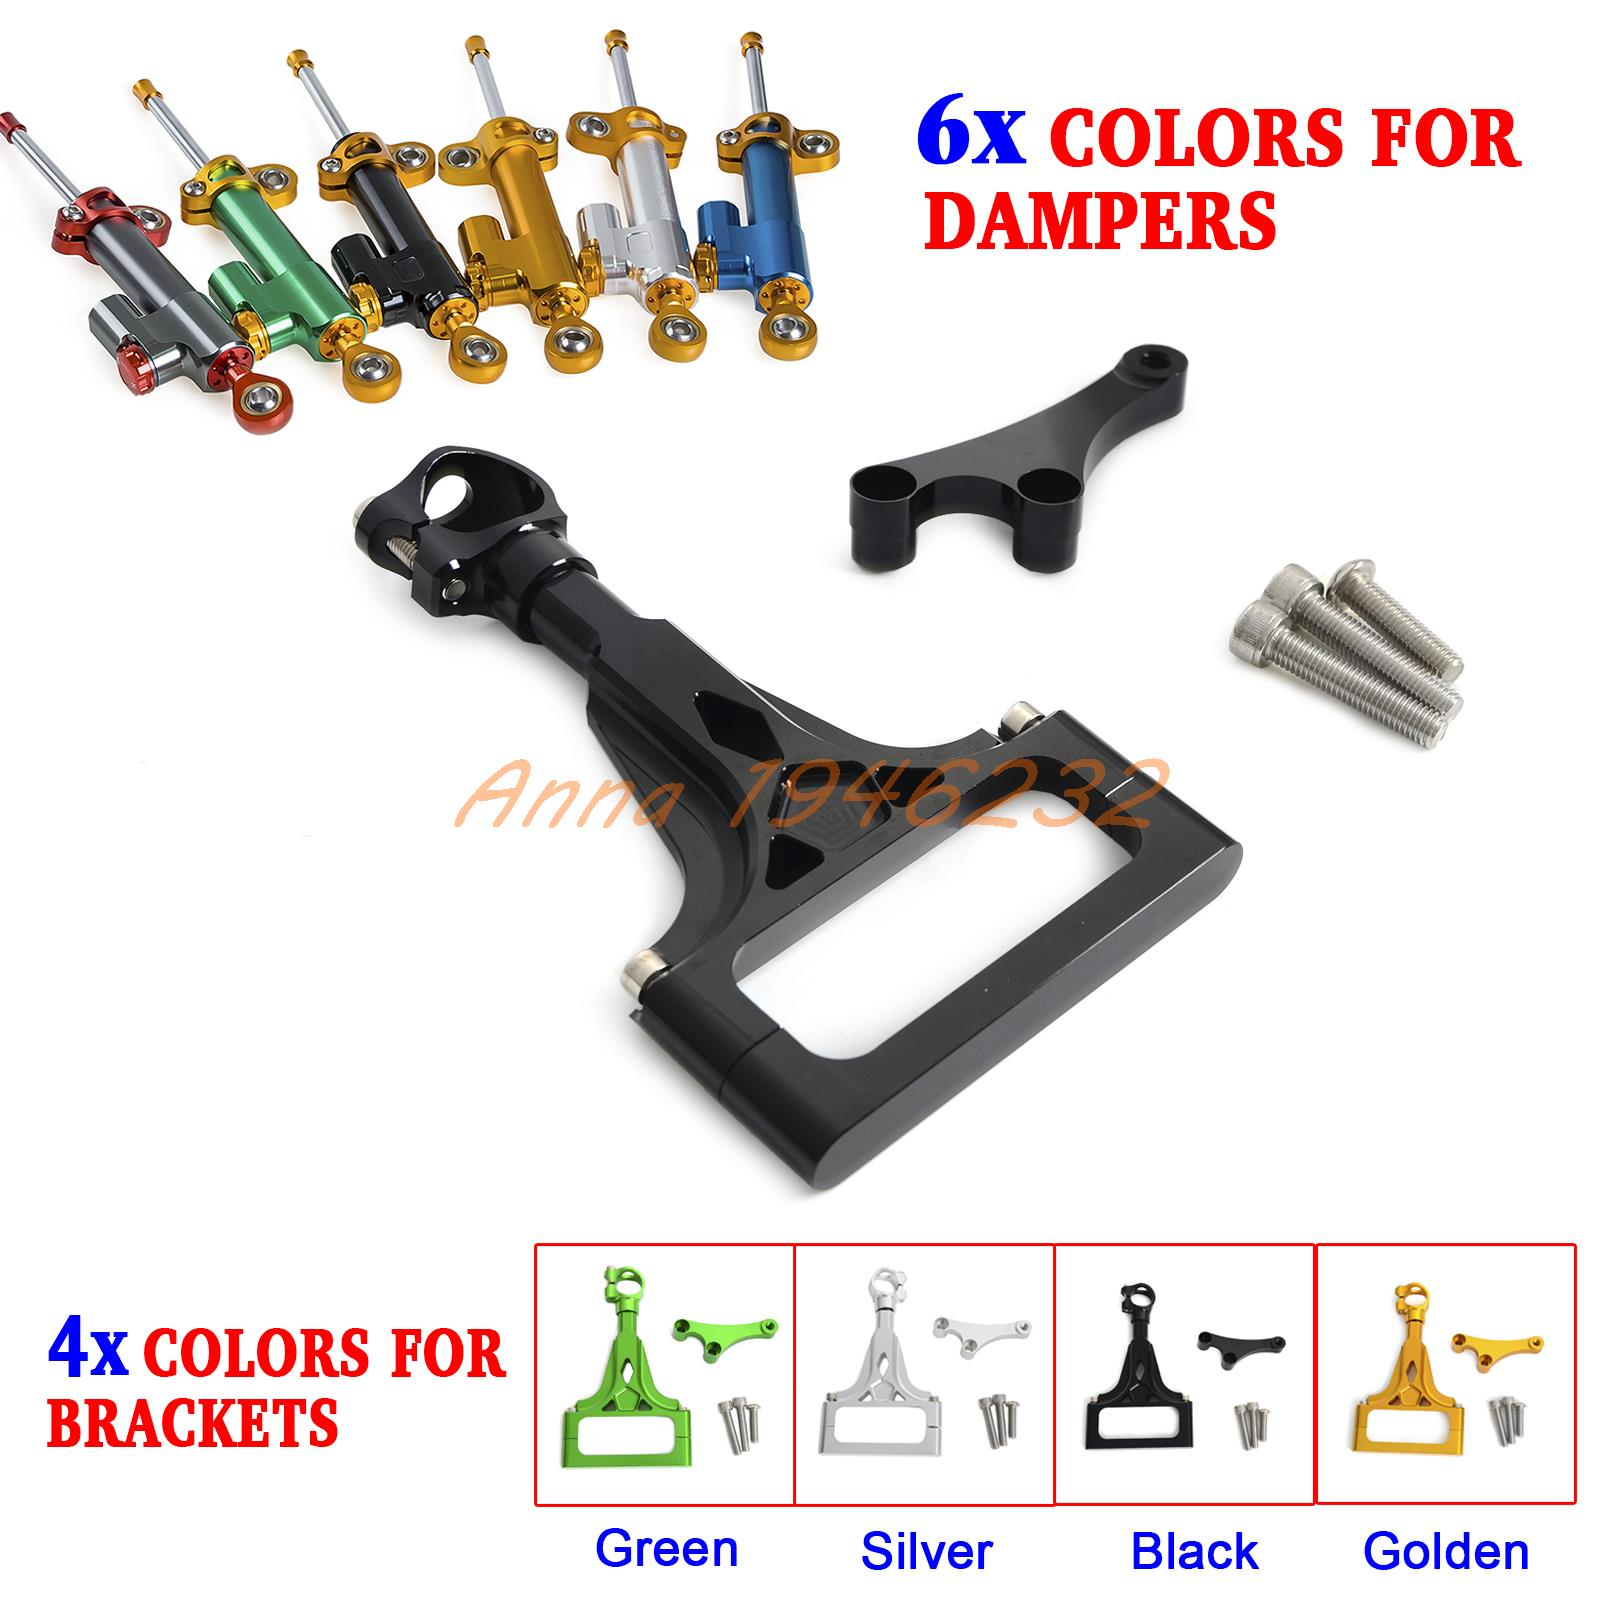 Motorcycle CNC Steering Damper Stabilizer & Bracket for Kawasaki Z750/ABS Z1000/ABS 2003-2009 for kawasaki z750 z800 z 750 z 800 universal motorcycle accessories stabilizer damper steering mounting all year